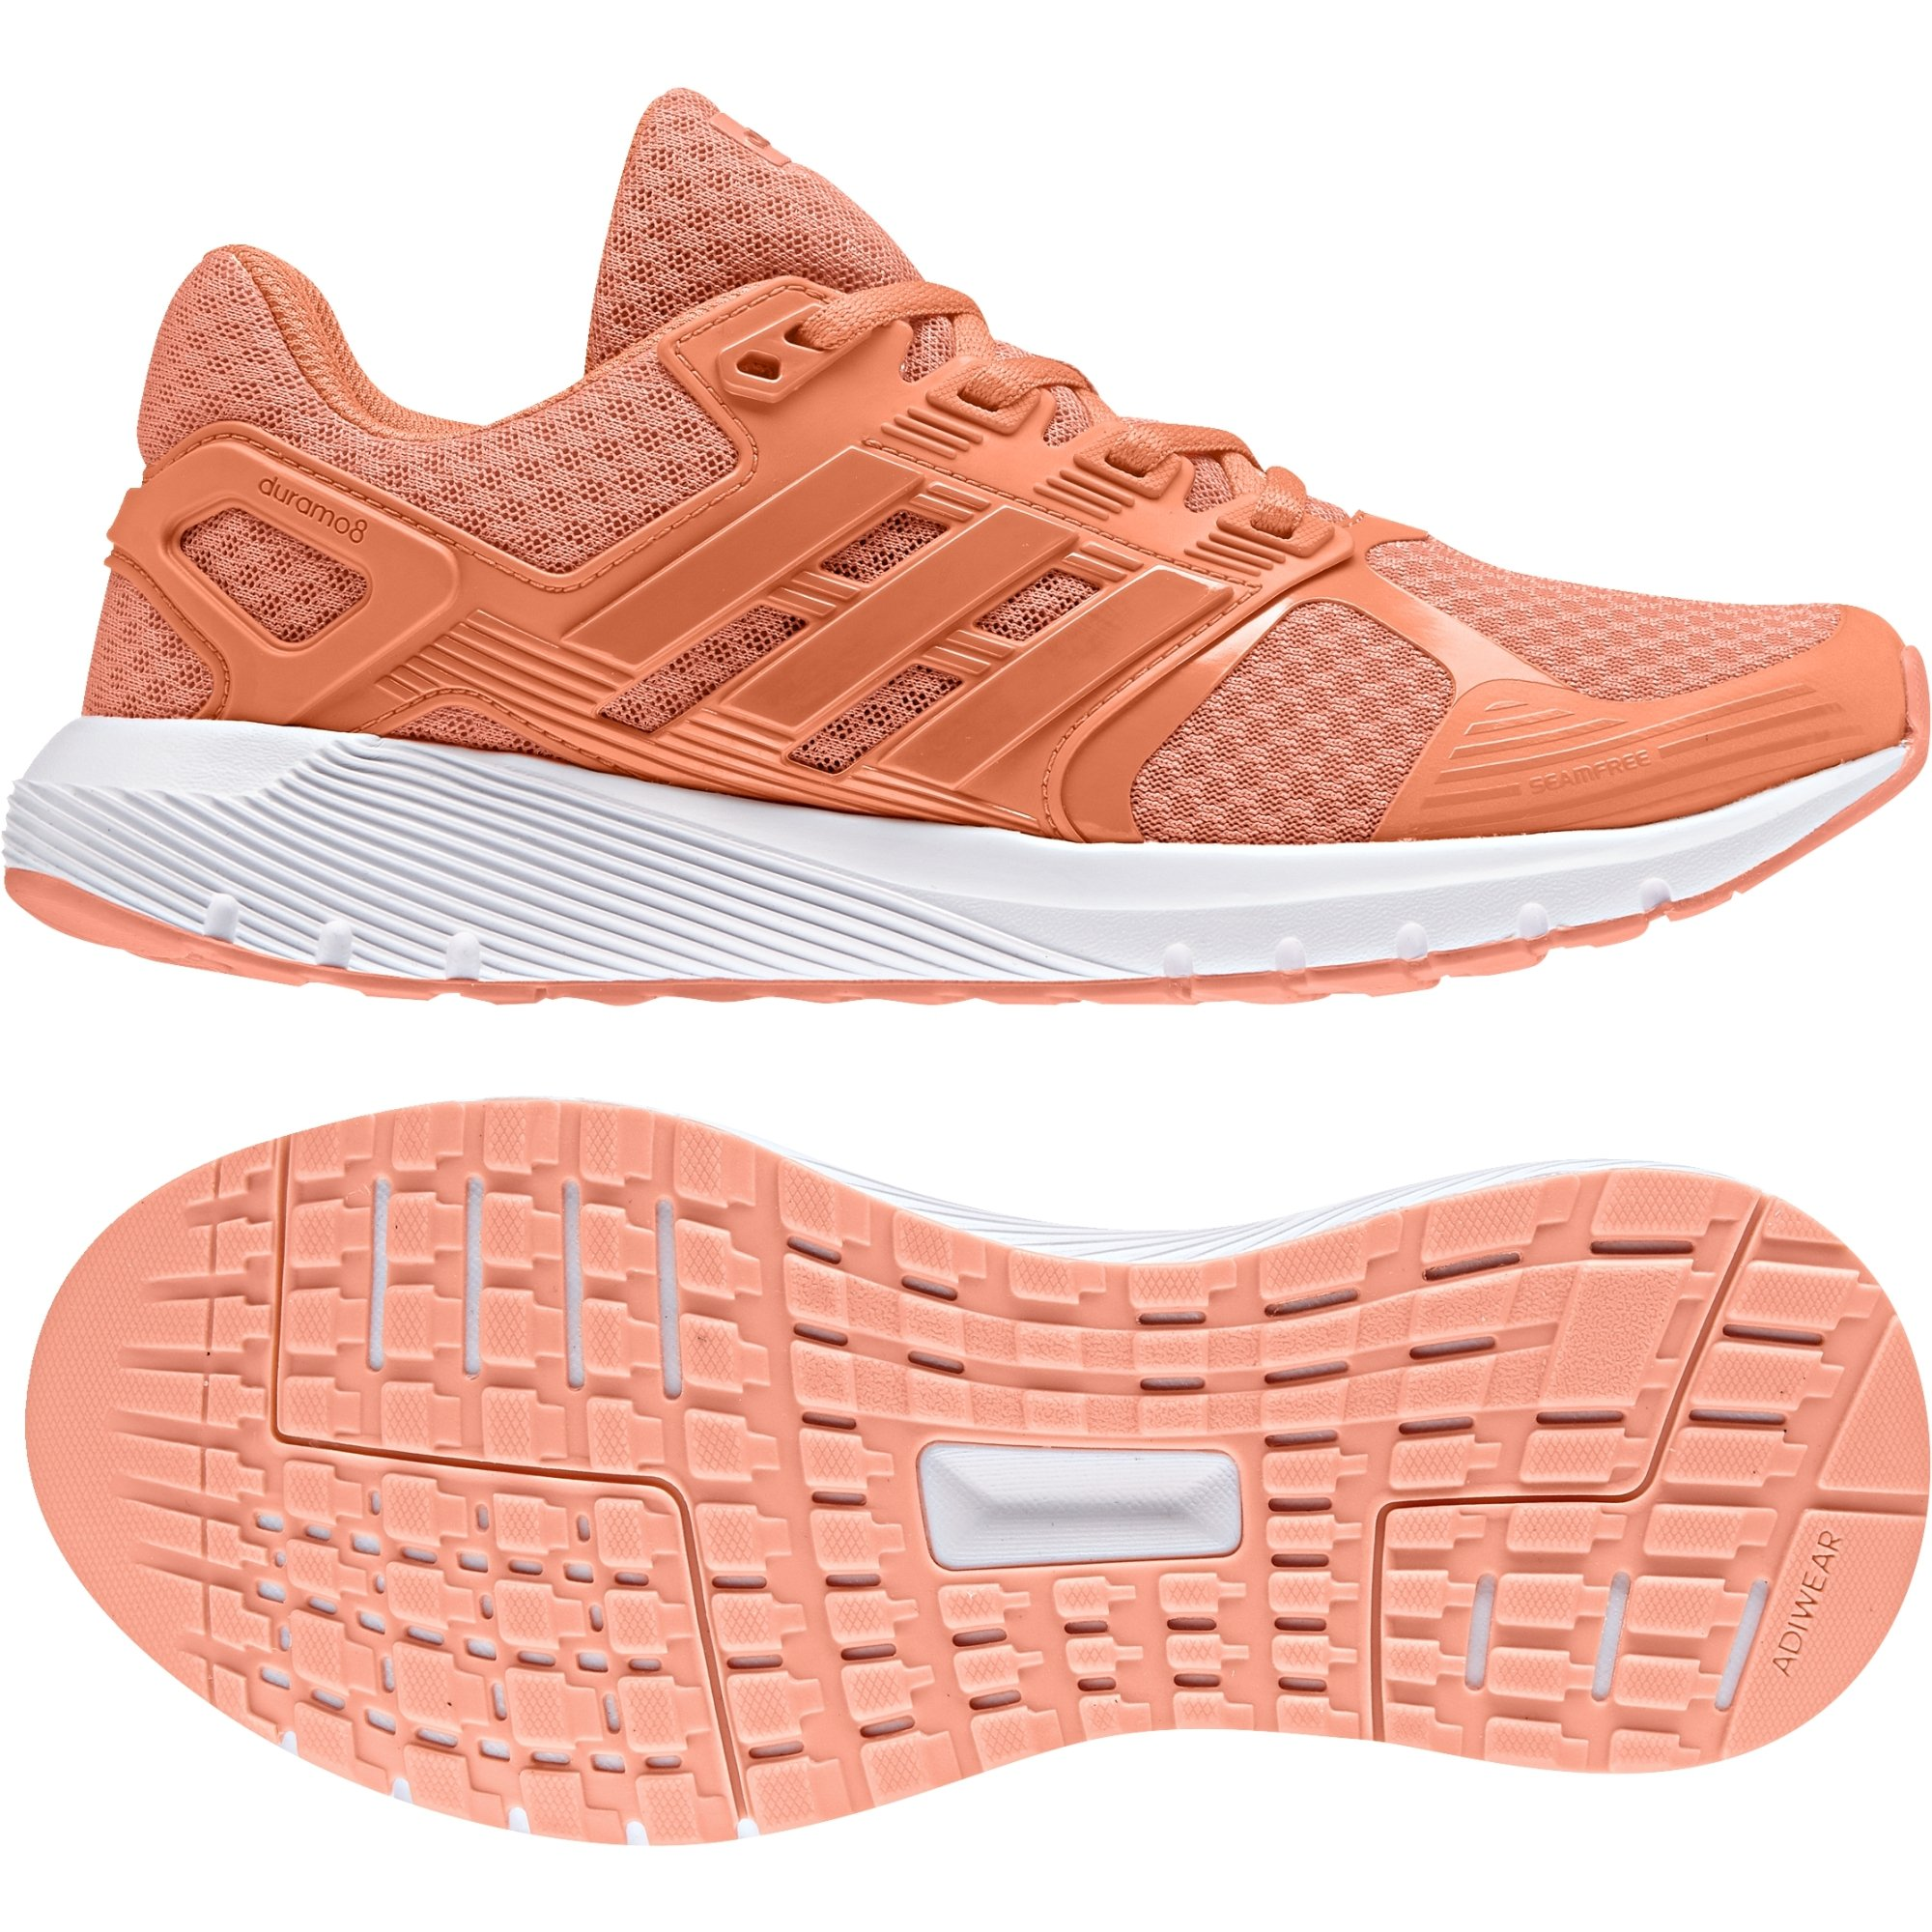 uk availability e6696 ab2ba Adidas Duramo 8 W, Scarpe da Trail Running Donna – Spesavip